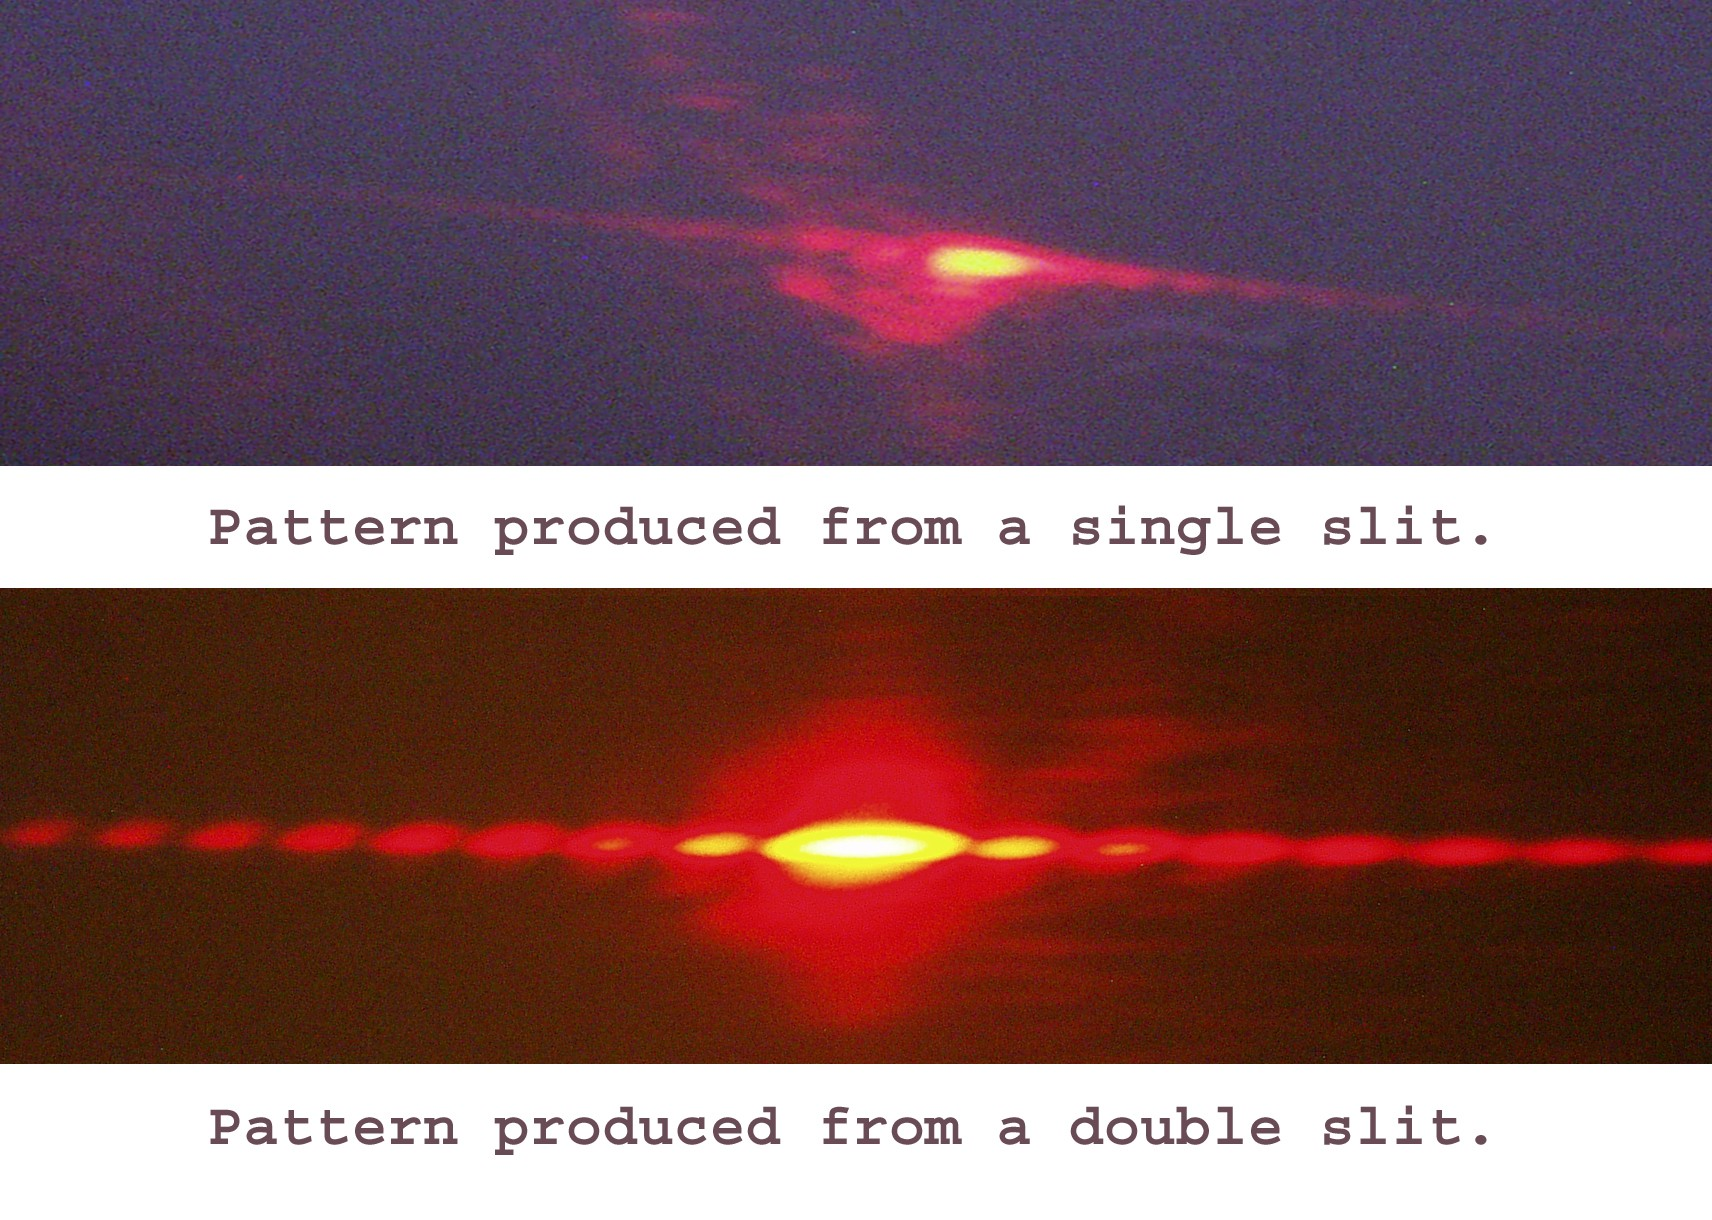 Single_%26_double_slit_experiment.jpg